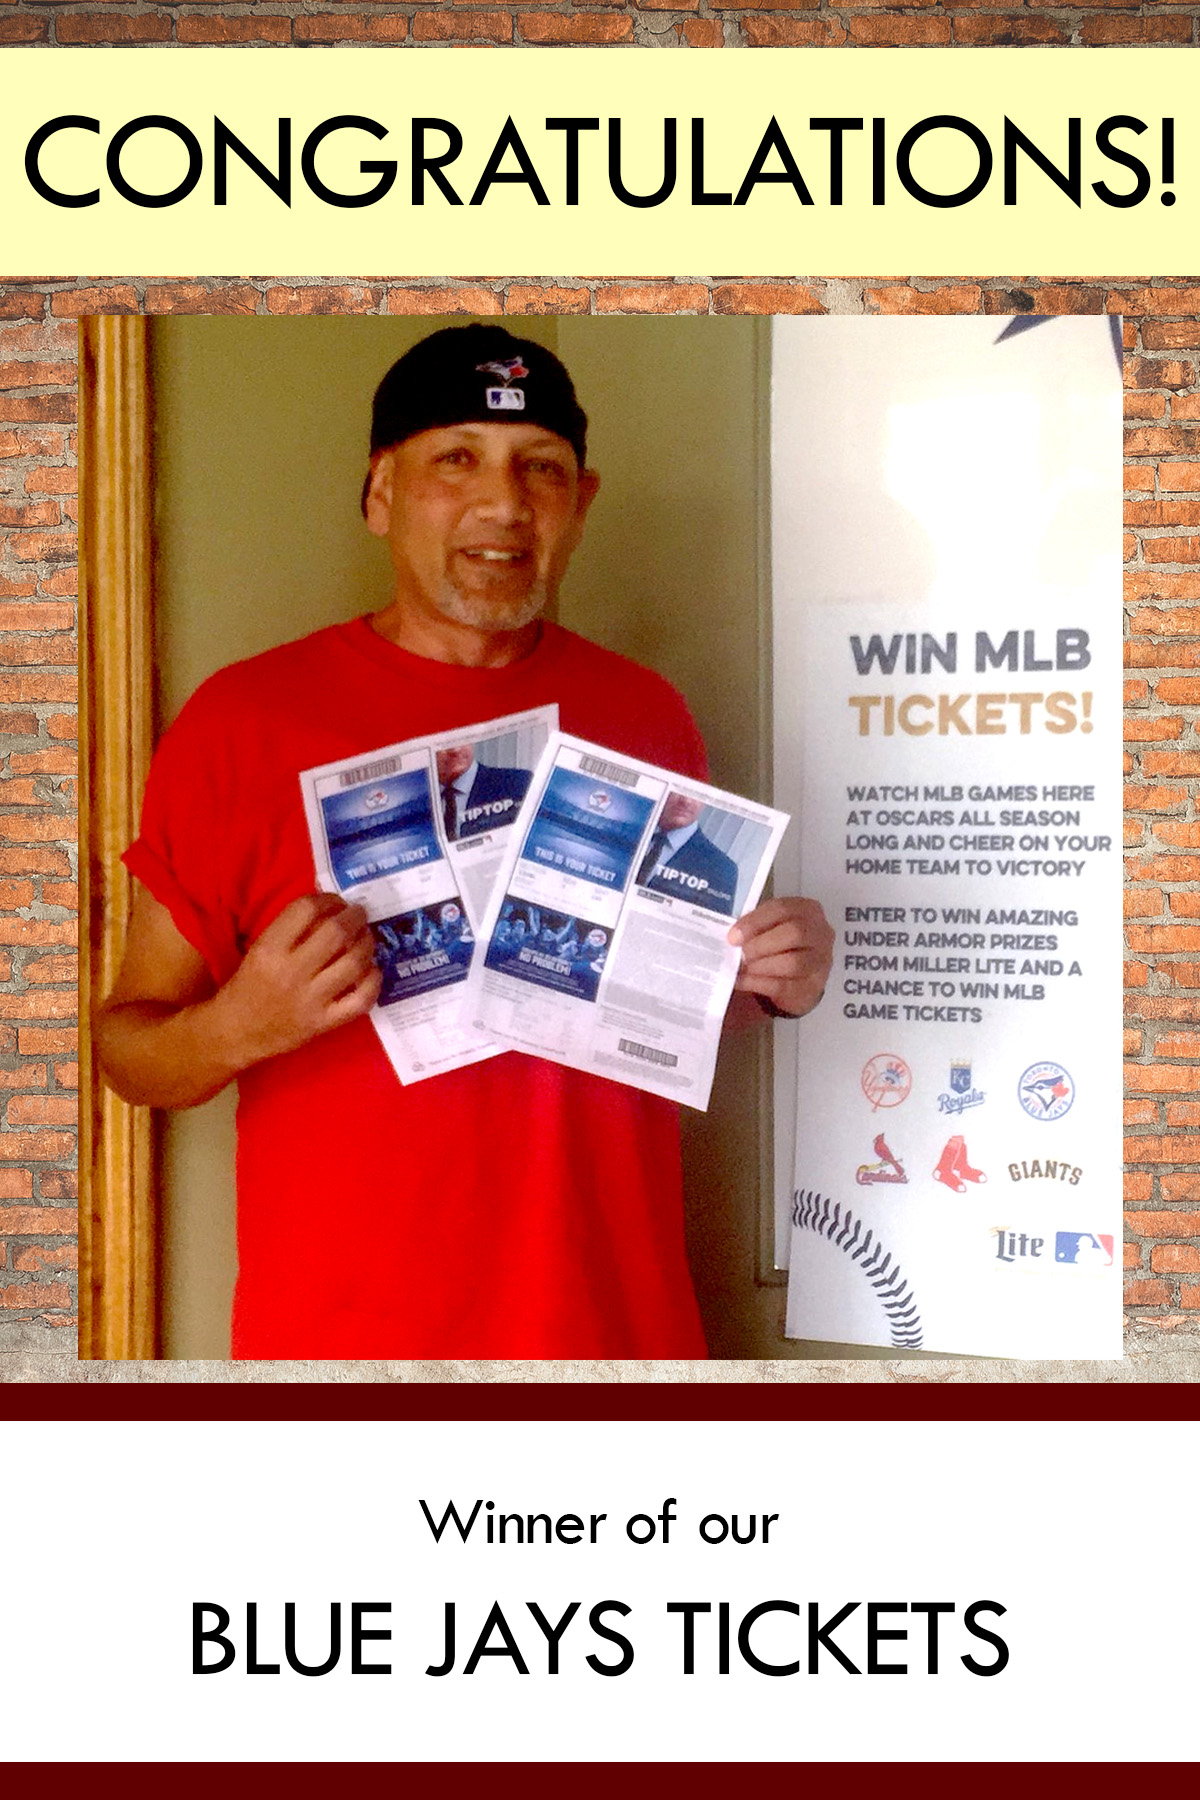 Congratulations Winner of Our Blue Jays Ticket